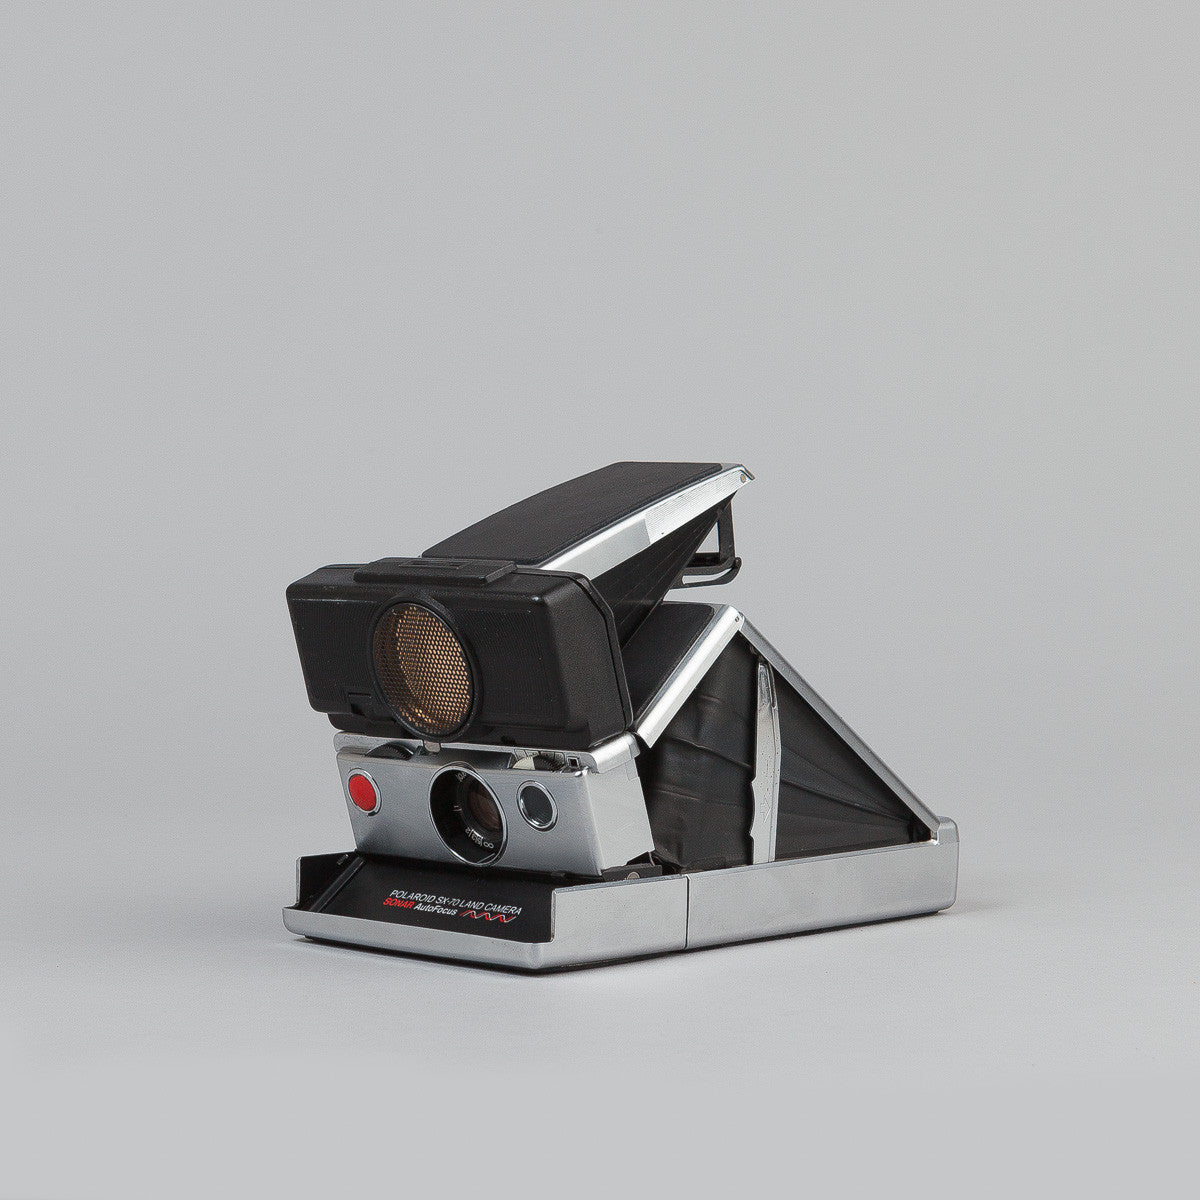 Impossible Polaroid SX-70 Camera - Sonar - Silver / Black Skin